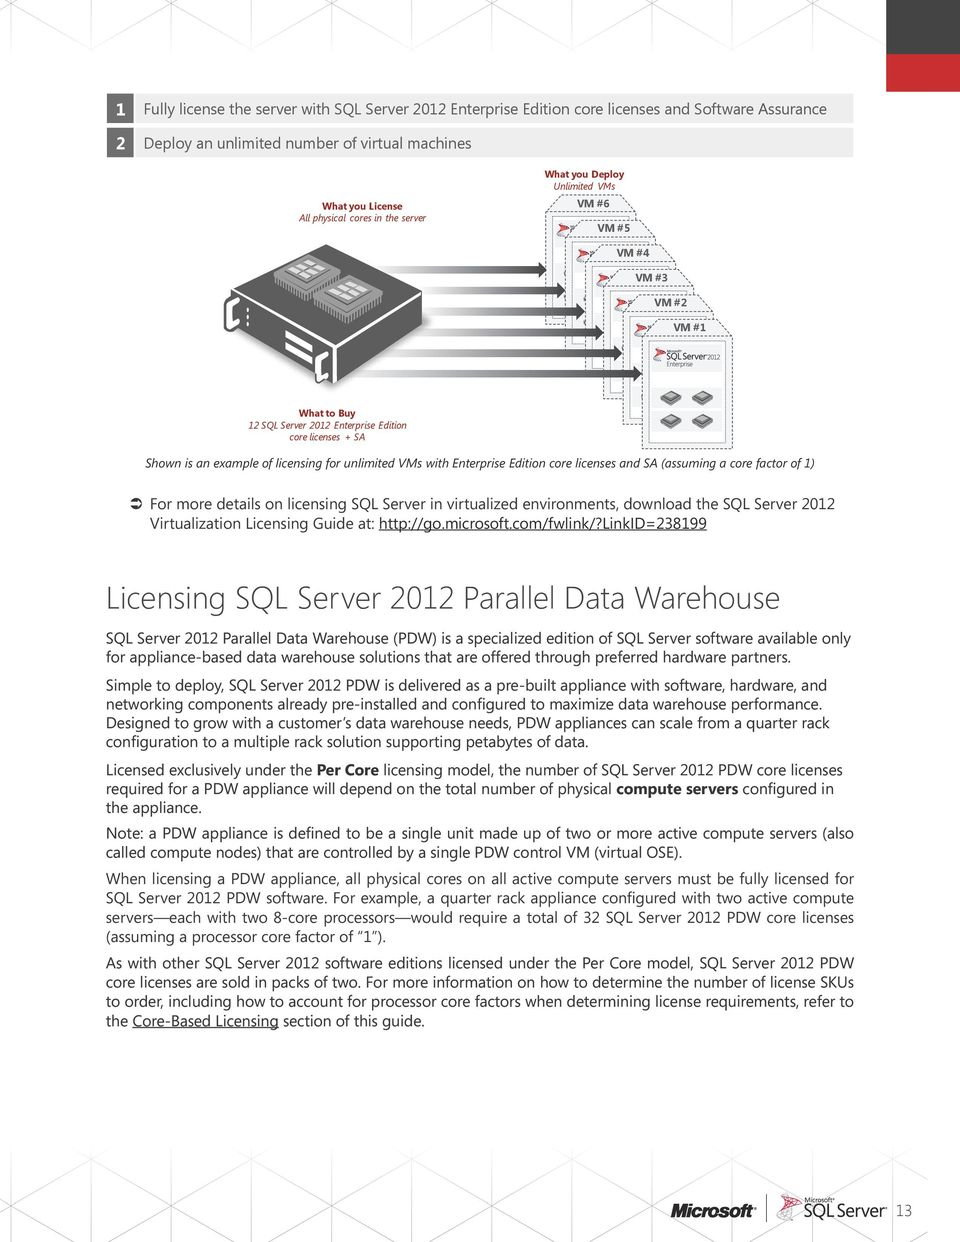 Enterprise Edition core licenses and SA (assuming a core factor of 1) For more details on licensing SQL Server in virtualized environments, download the SQL Server 2012 Virtualization Licensing Guide